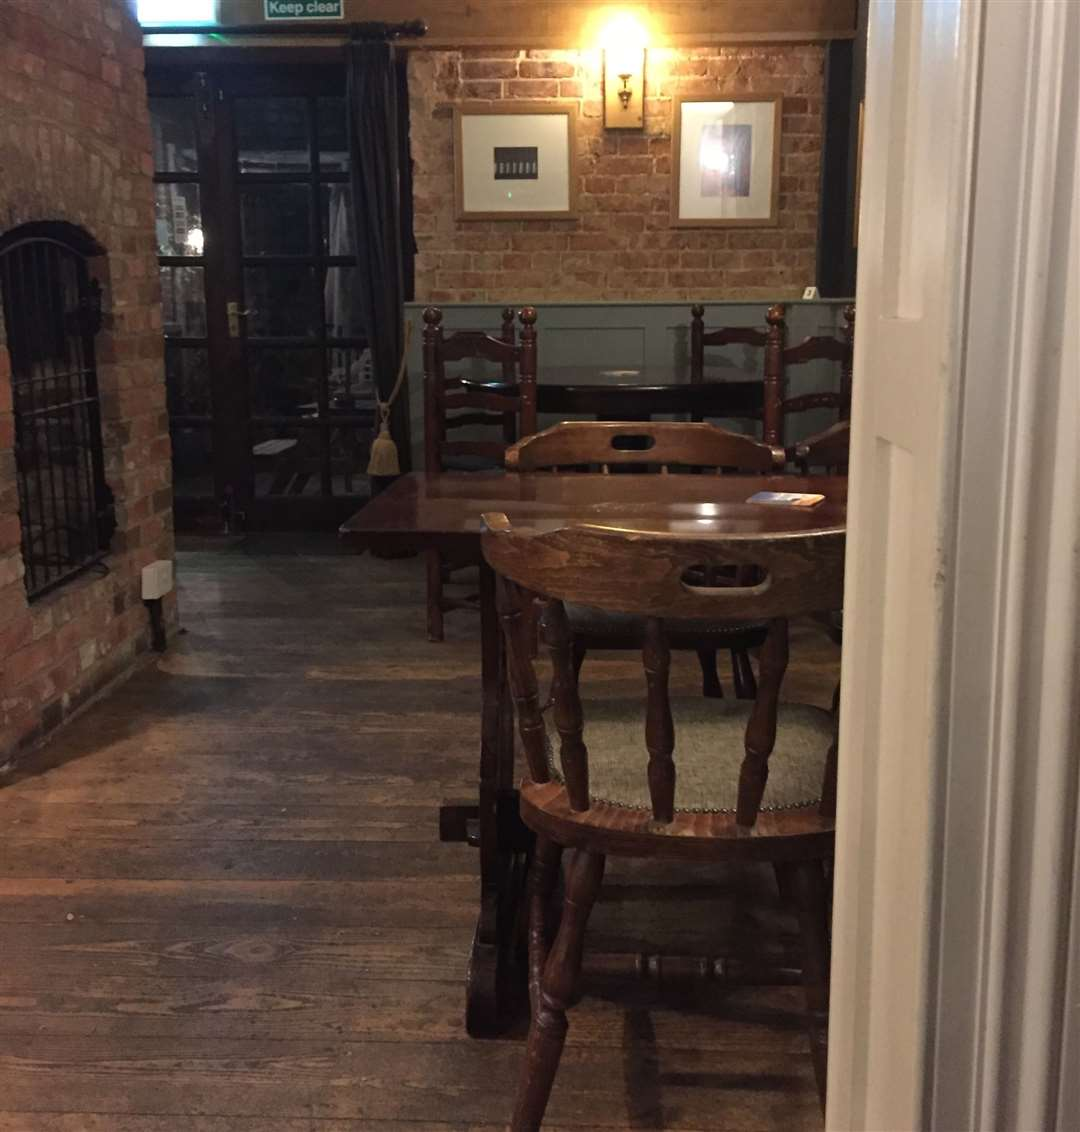 Stripped floorboards, natural brick and sensible furniture – the pub is well maintained and cared for